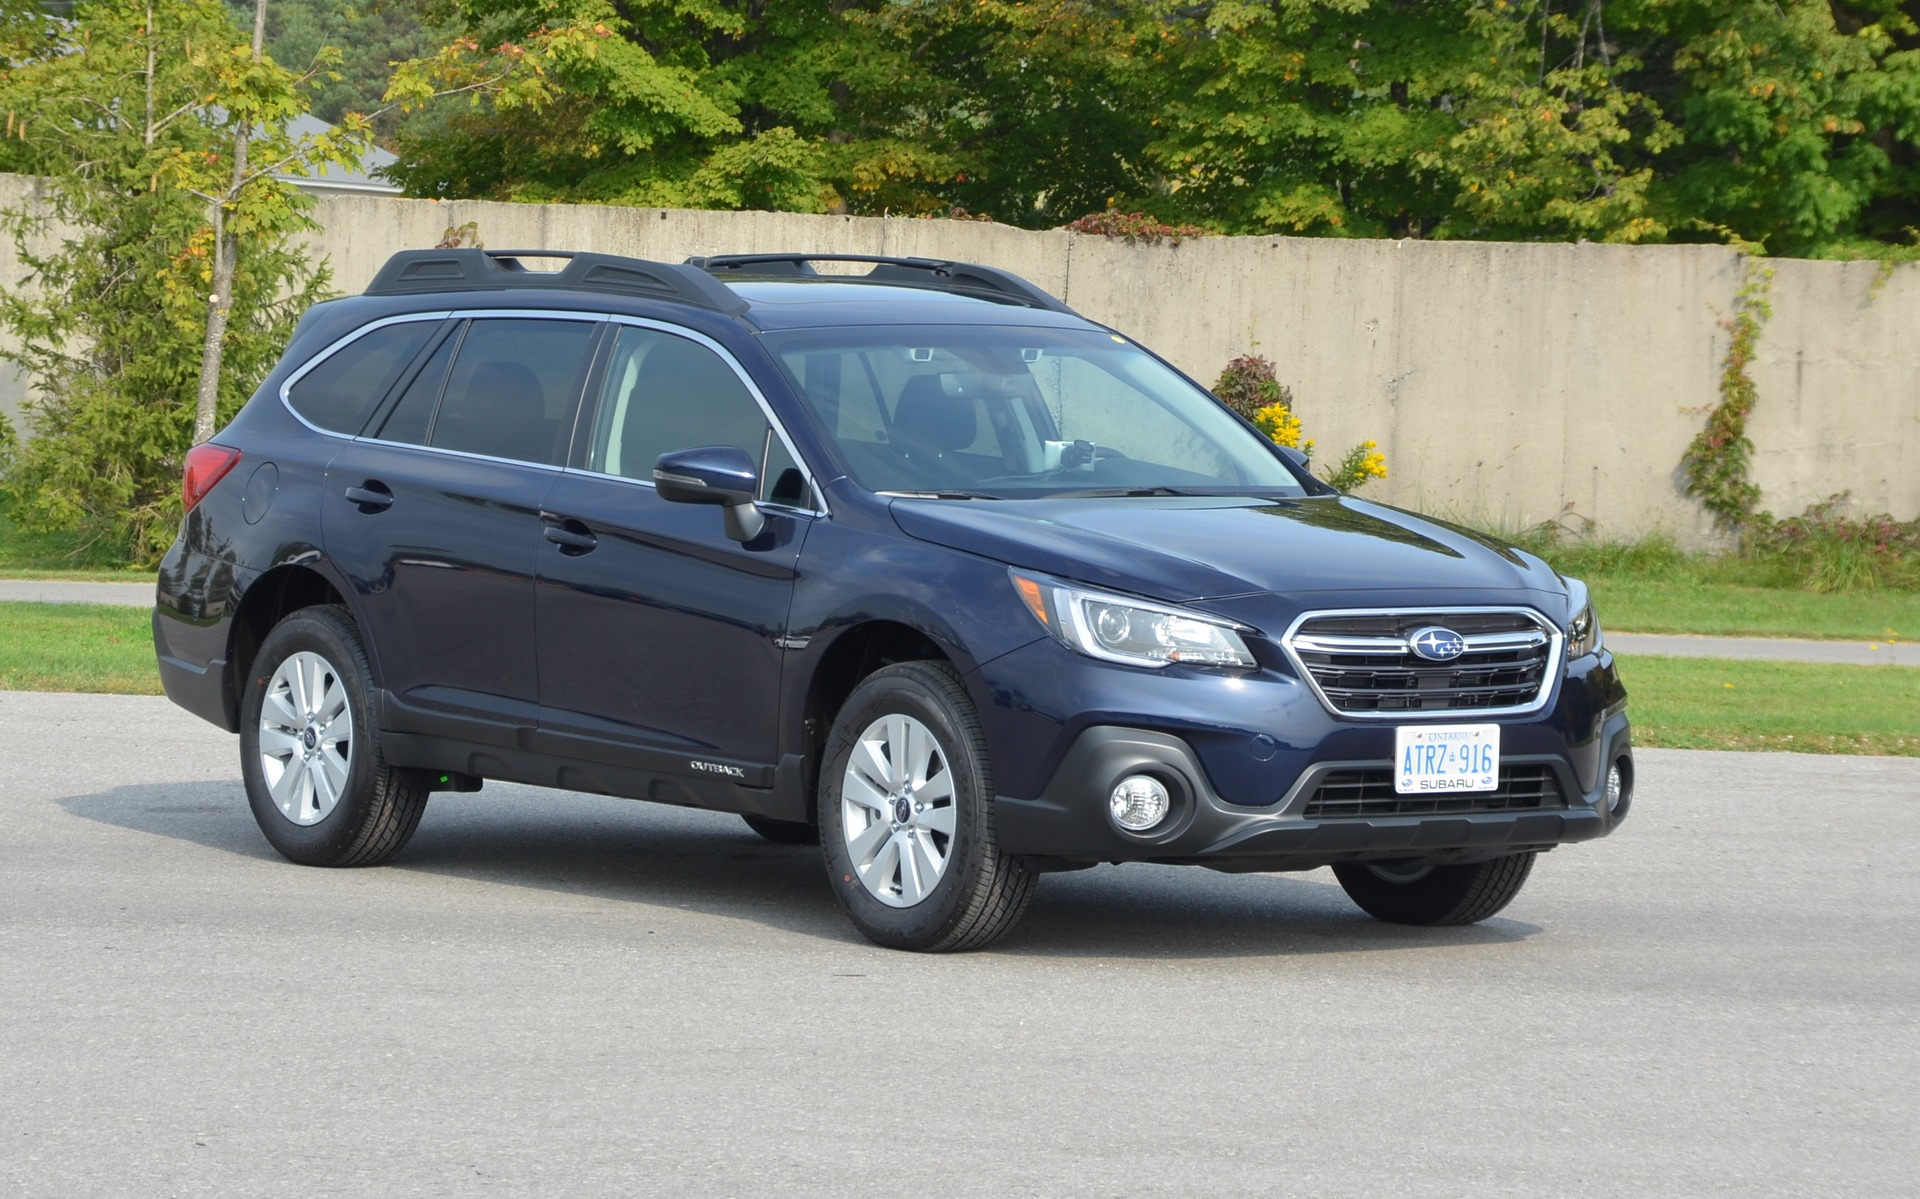 2018 Subaru Legacy and Outback: Wired for the Future - 2/18